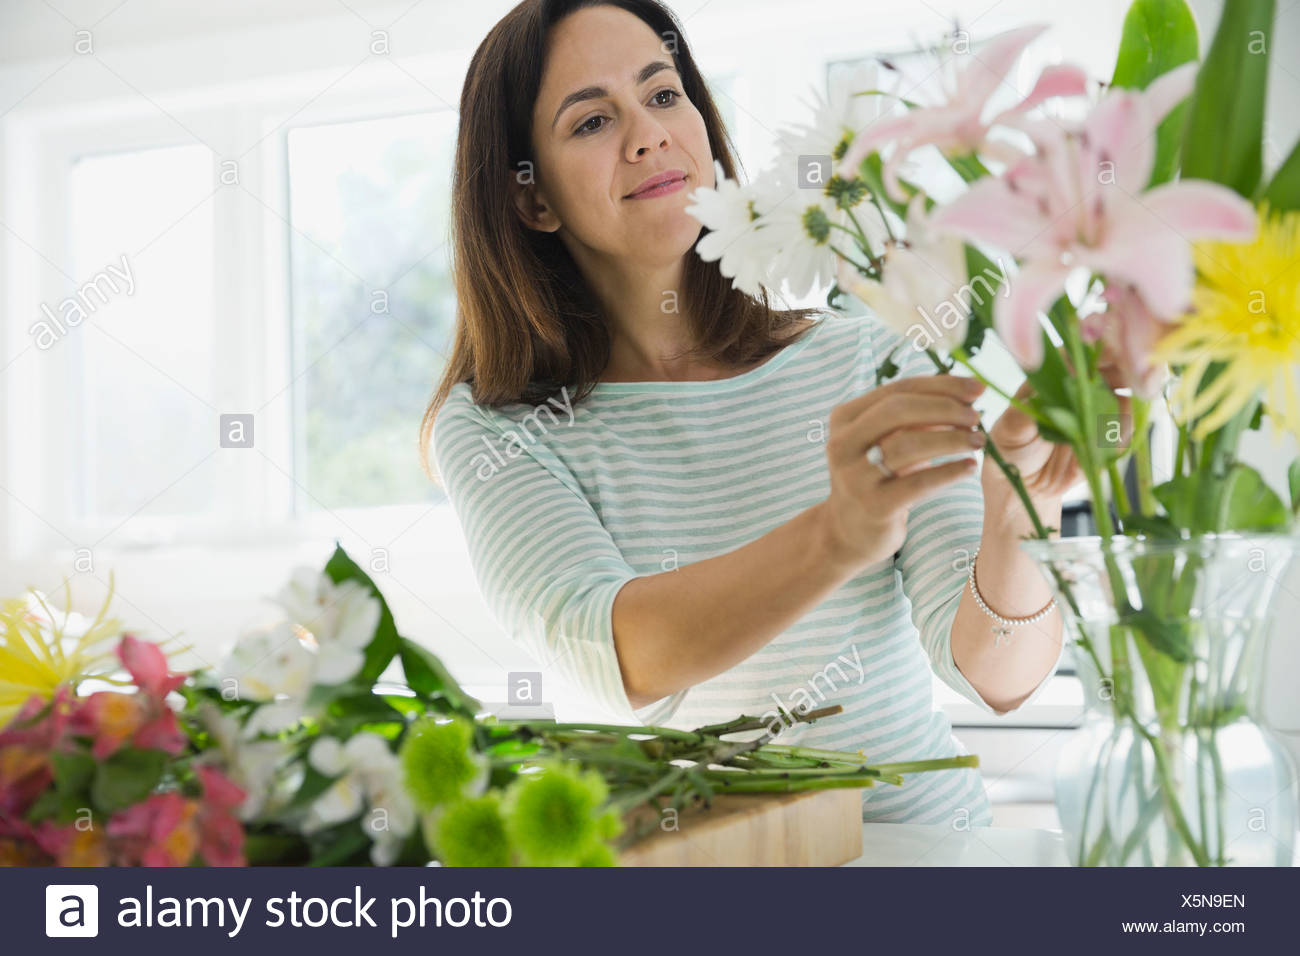 Woman arranging flowers in vase at home - Stock Image